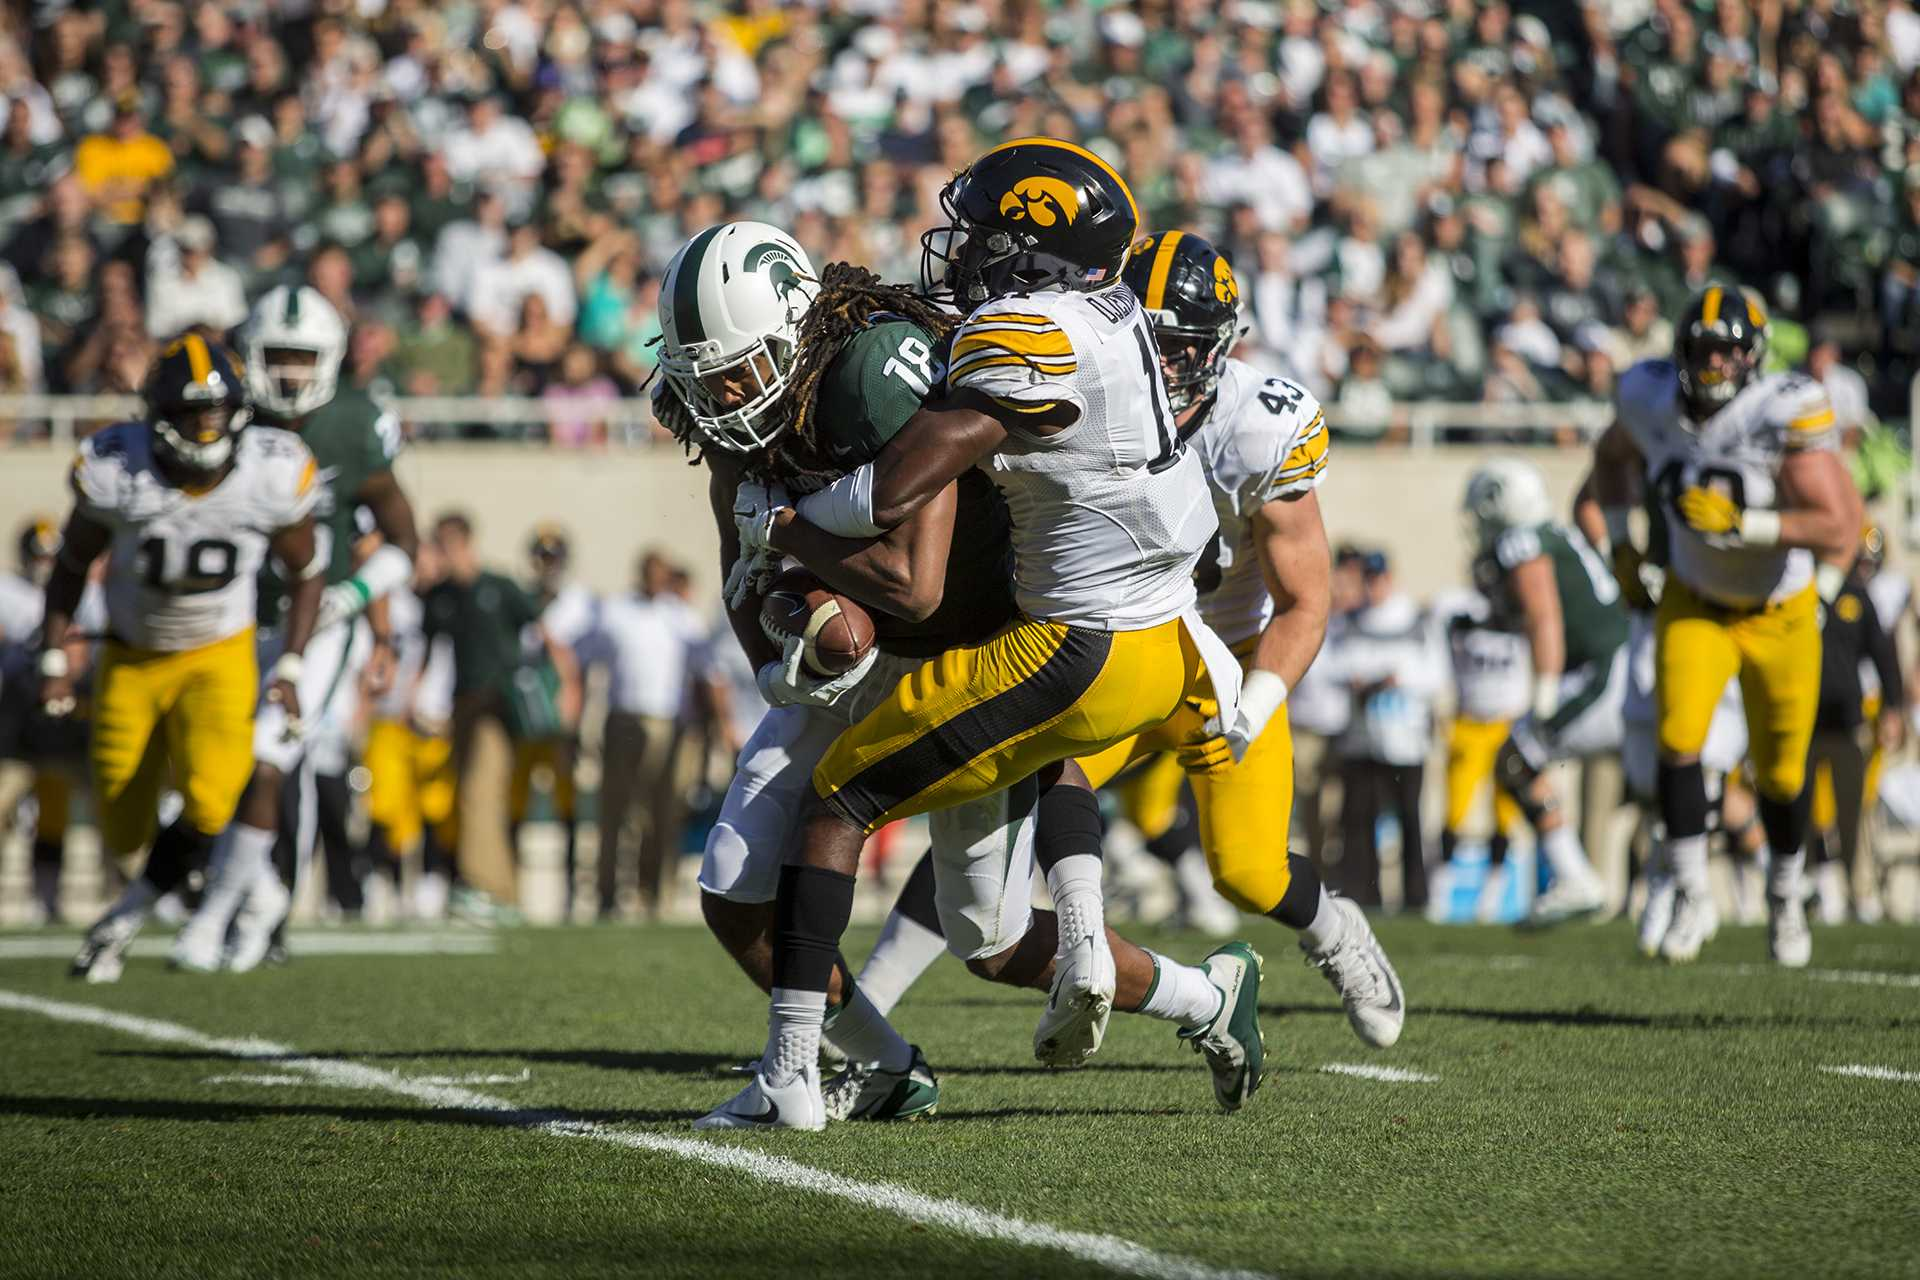 Iowa cornerback Michael Ojemudia tackles Michigan State wide receiver Felton Davis during the game between Iowa and Michigan State at Spartan Stadium on Saturday Sept. 30, 2017. The Spartans defeated the Hawkeyes 17-10.